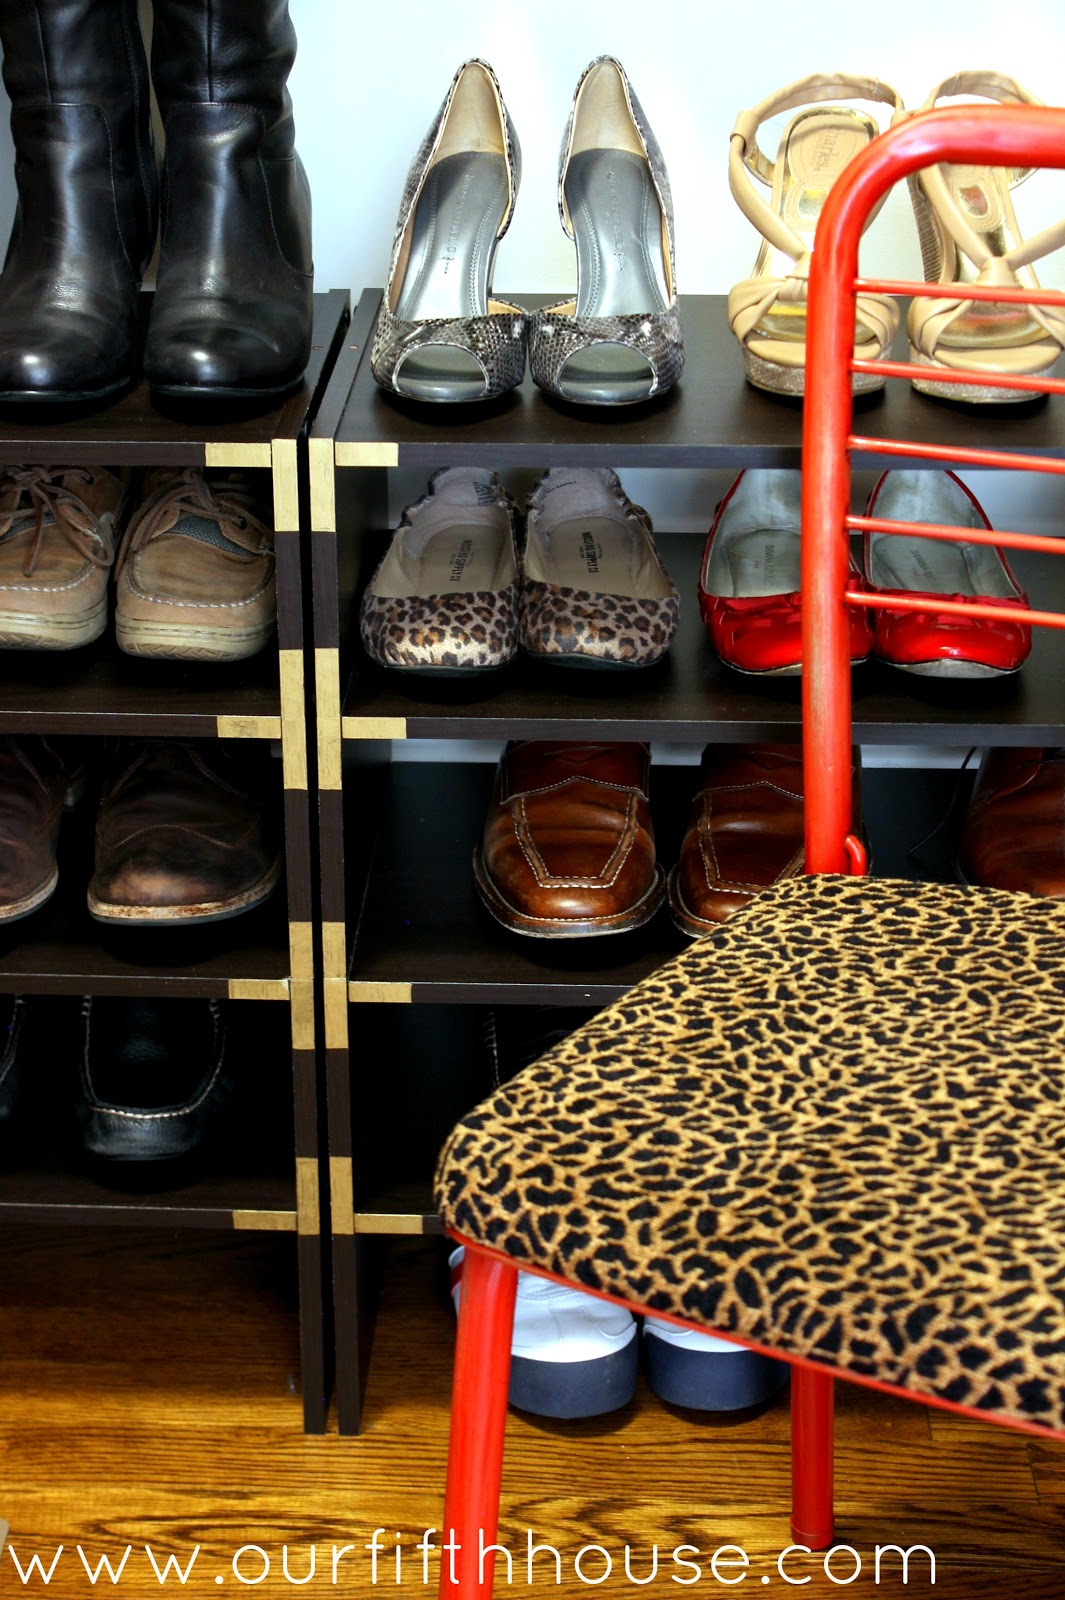 Diy Shoe Rack Amp Campaign Style Shoe Shelves Our Fifth House